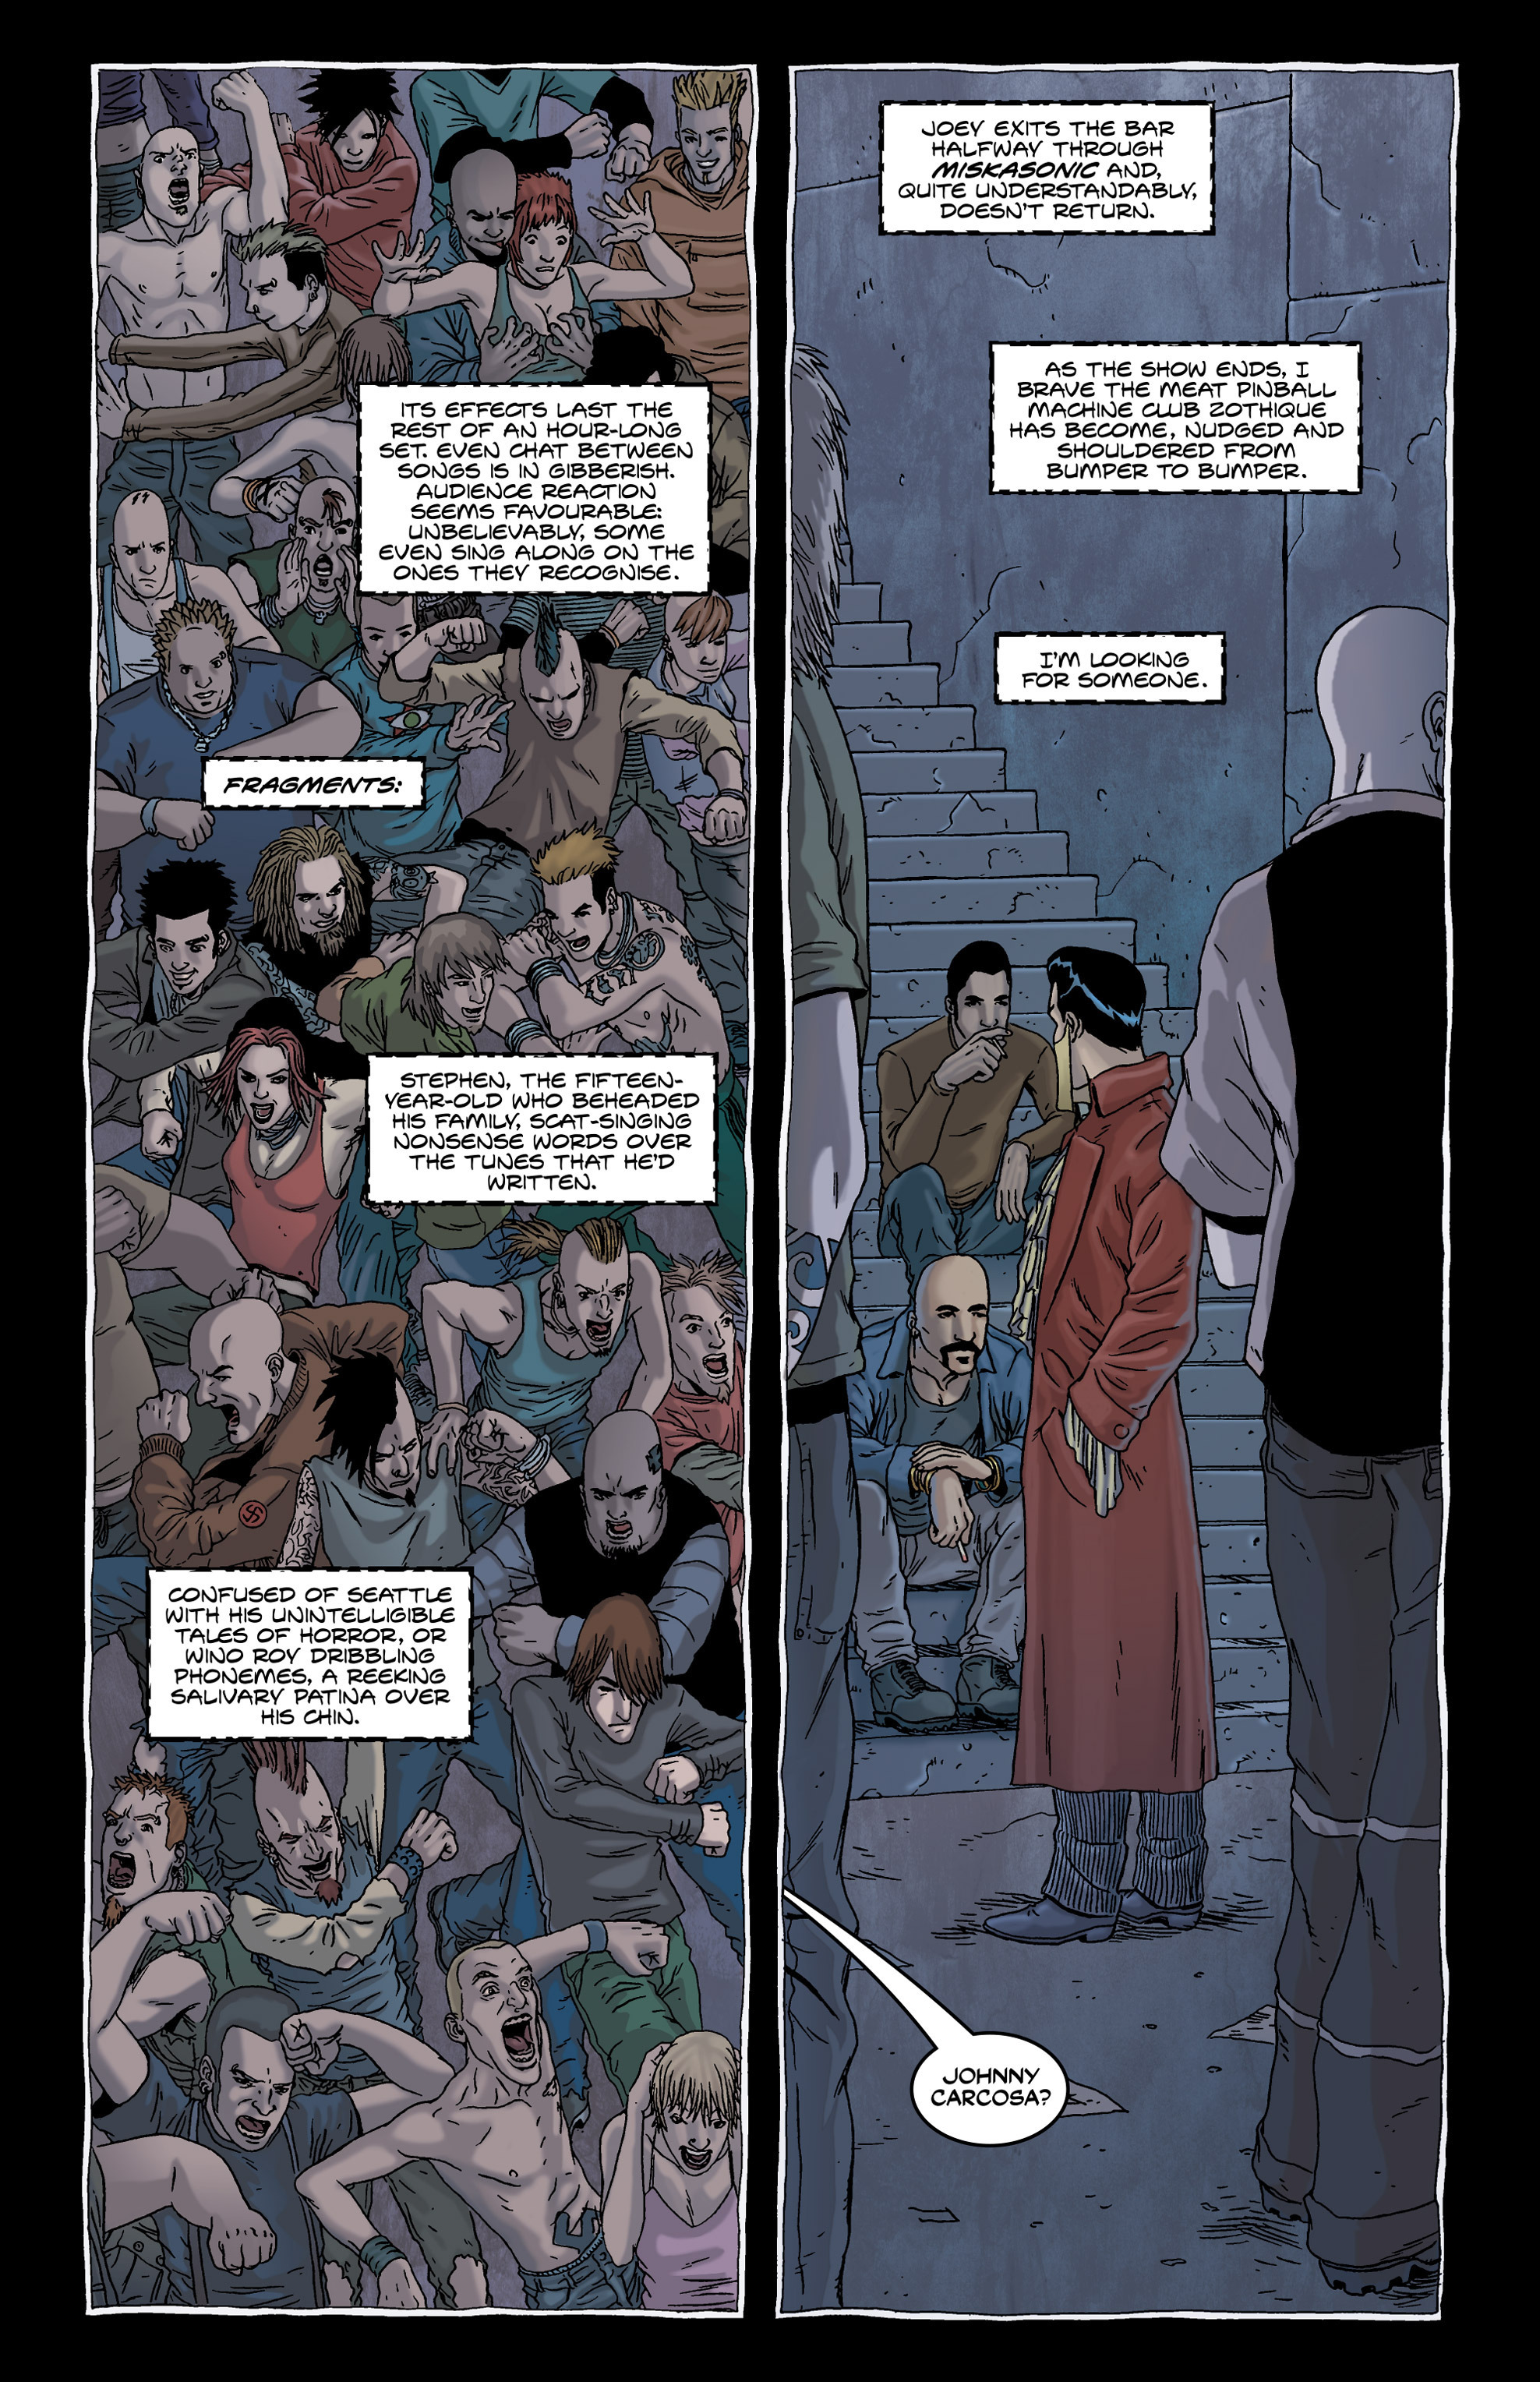 Read online Alan Moore's The Courtyard comic -  Issue # TPB - 23